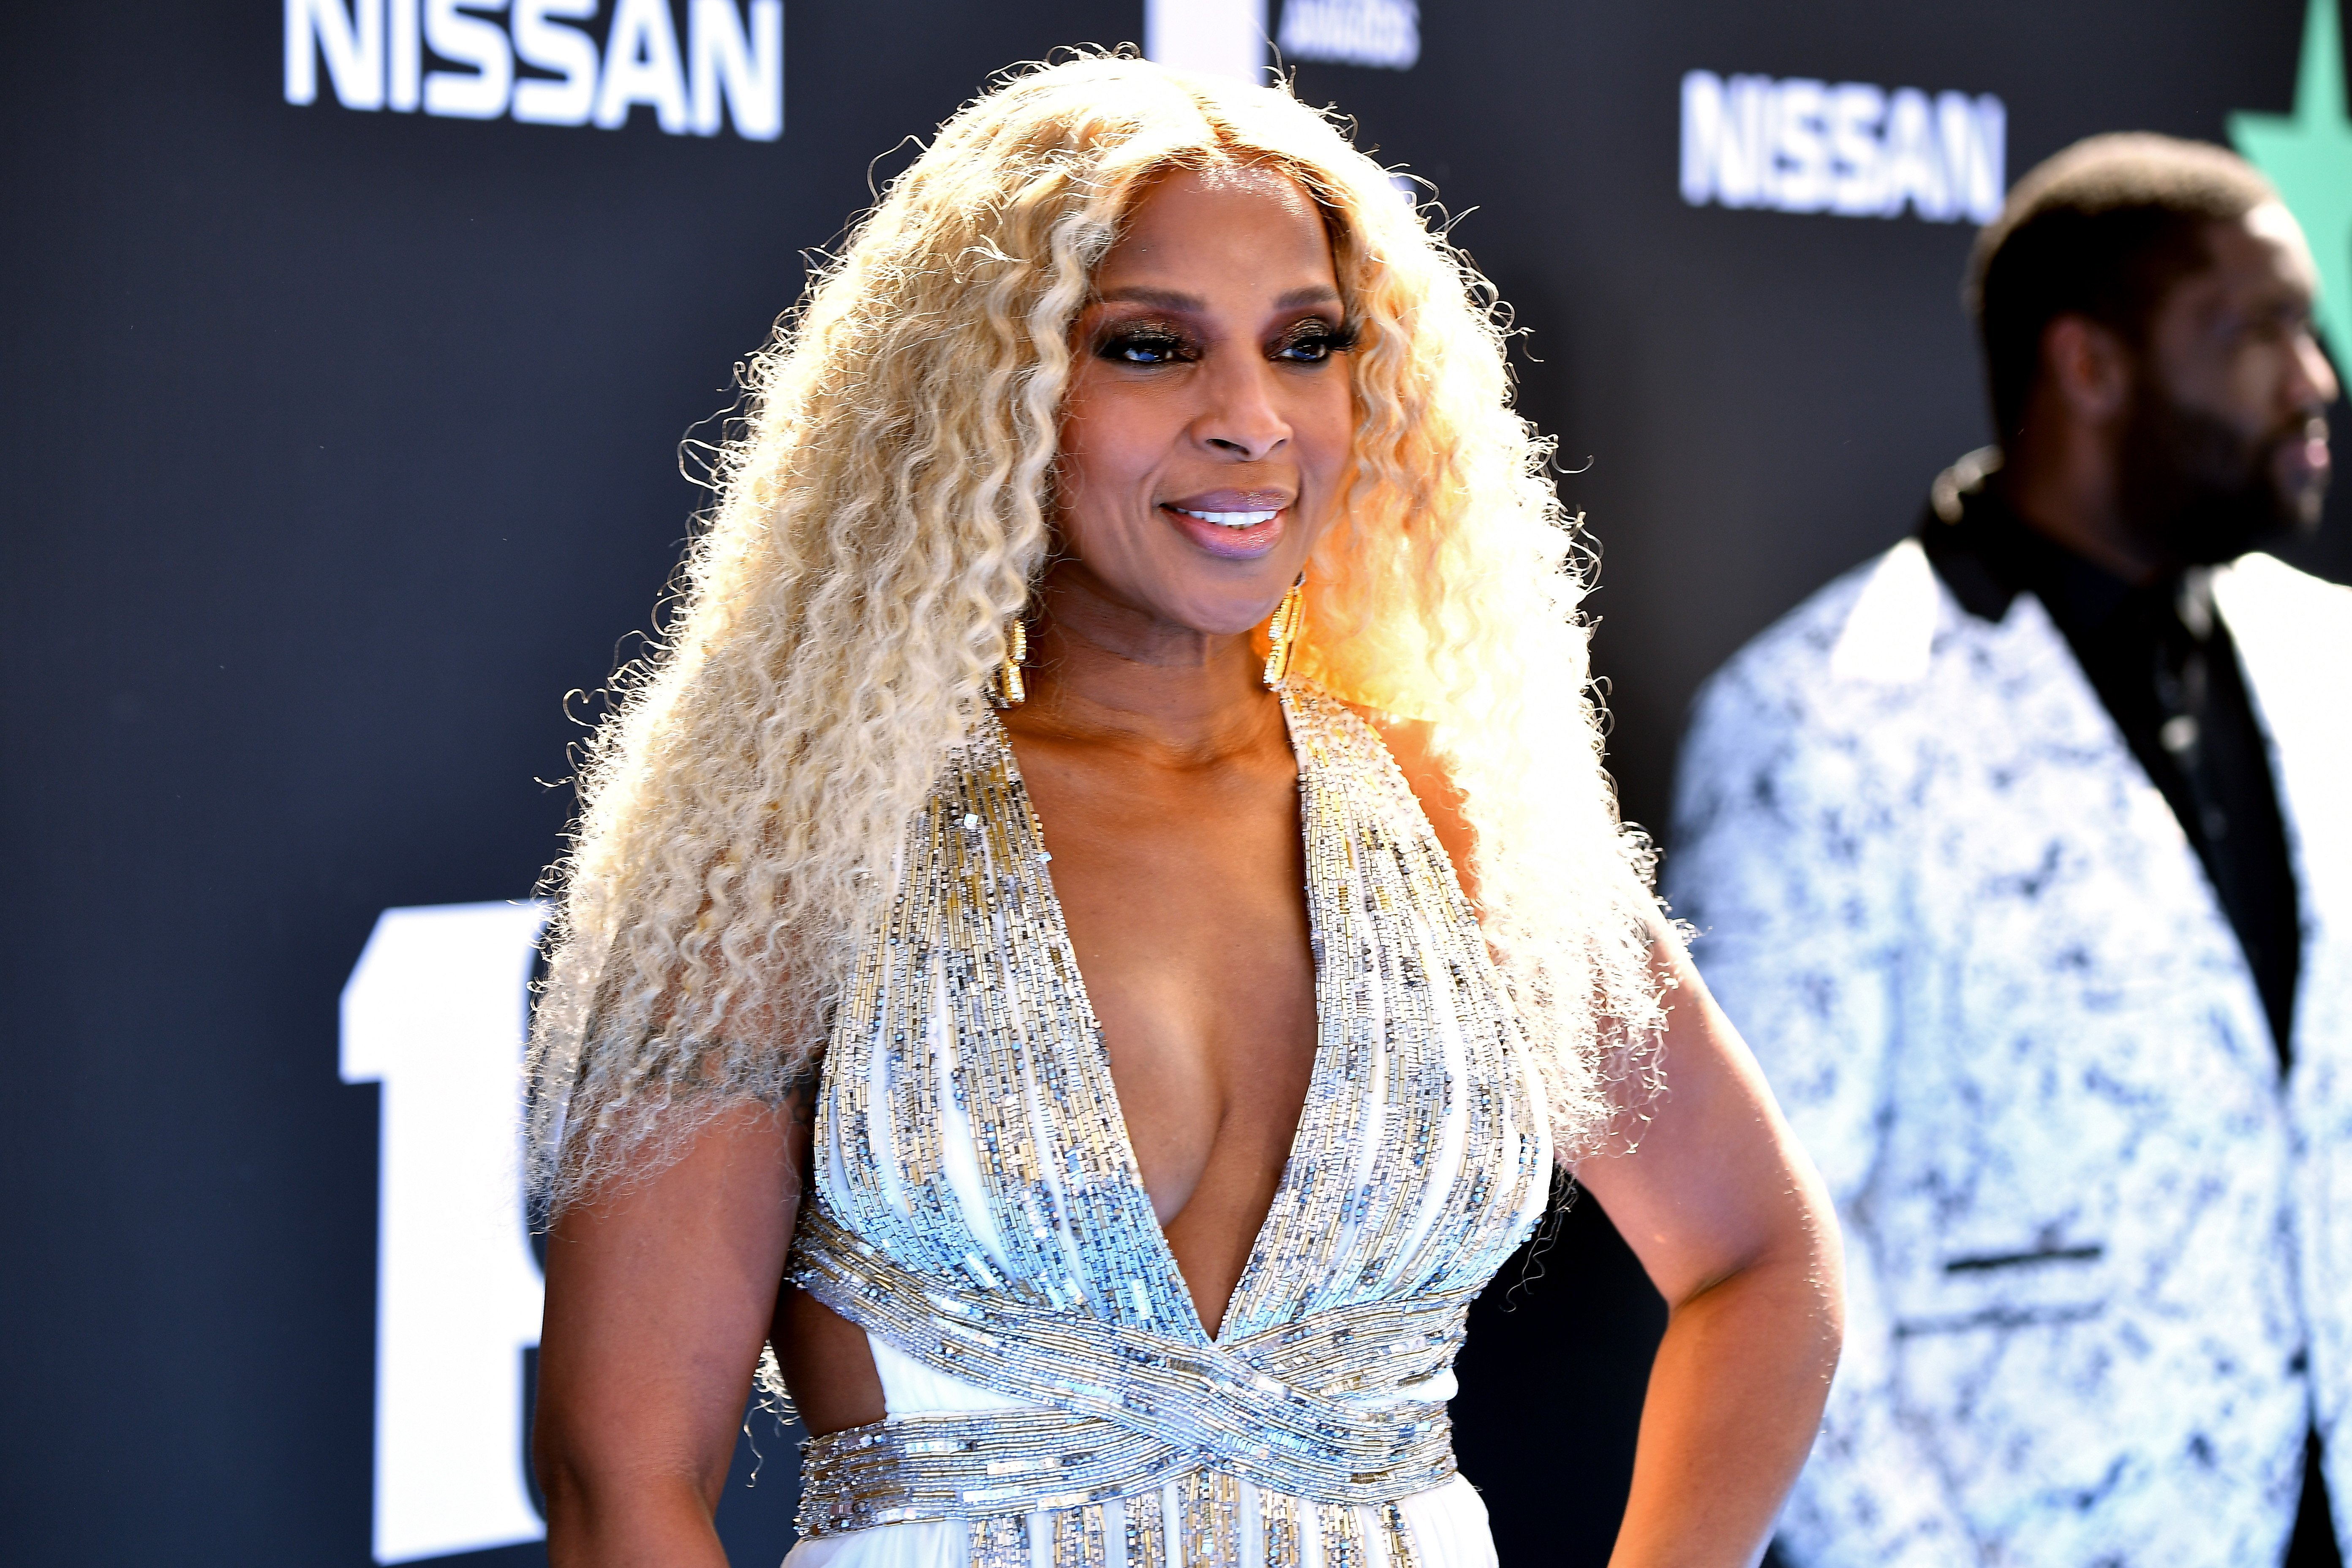 Mary J. Blige attends the 2019 BET Awards at Microsoft Theater on June 23, 2019. | Photo: GettyImages